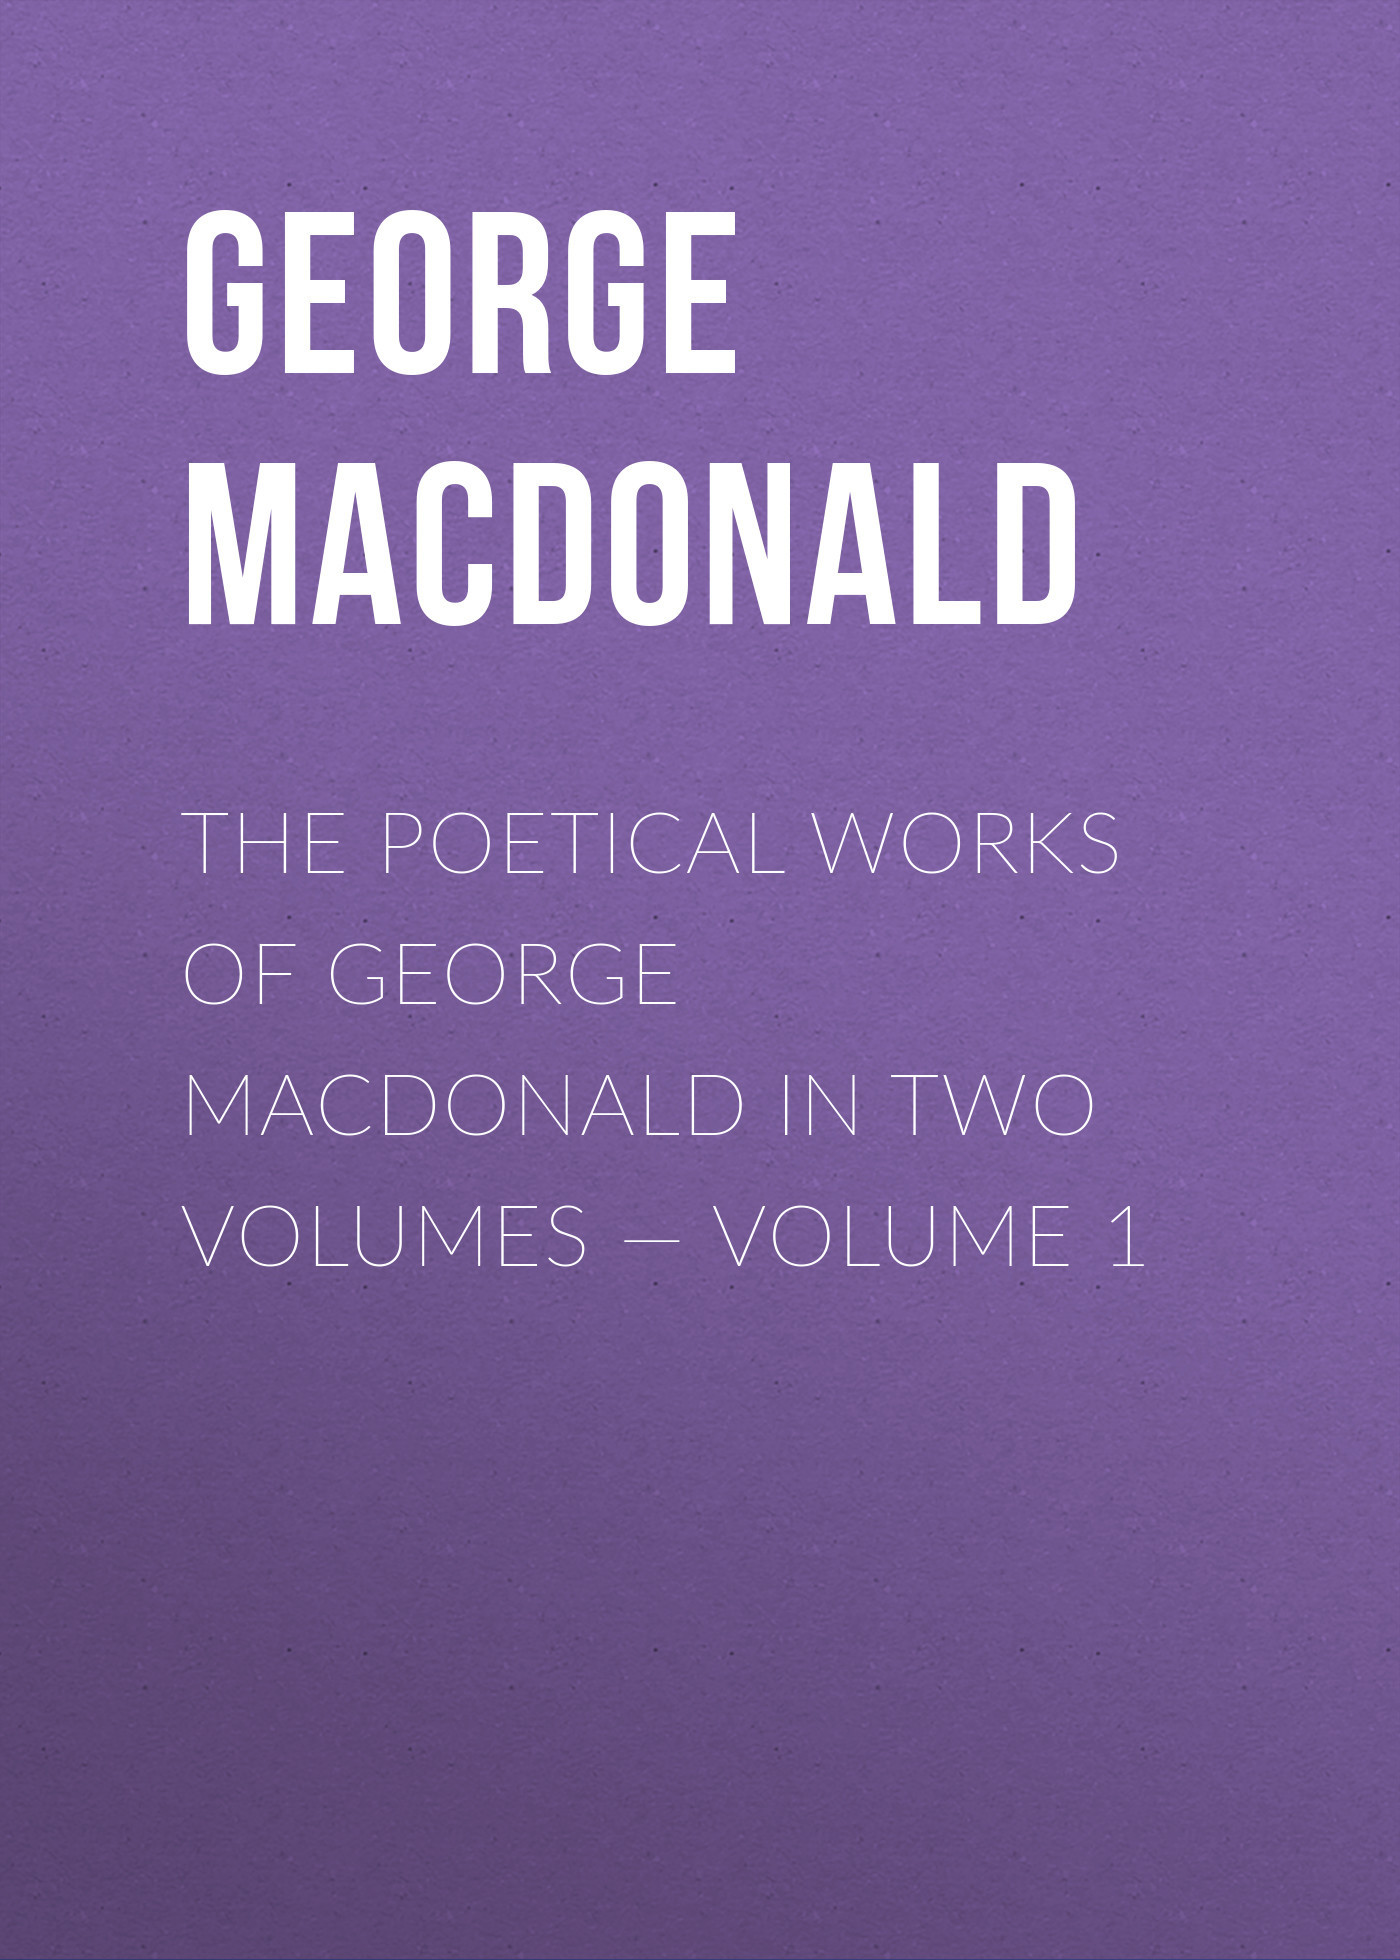 George MacDonald The poetical works of George MacDonald in two volumes — Volume 1 george thorogood george thorogood party of one